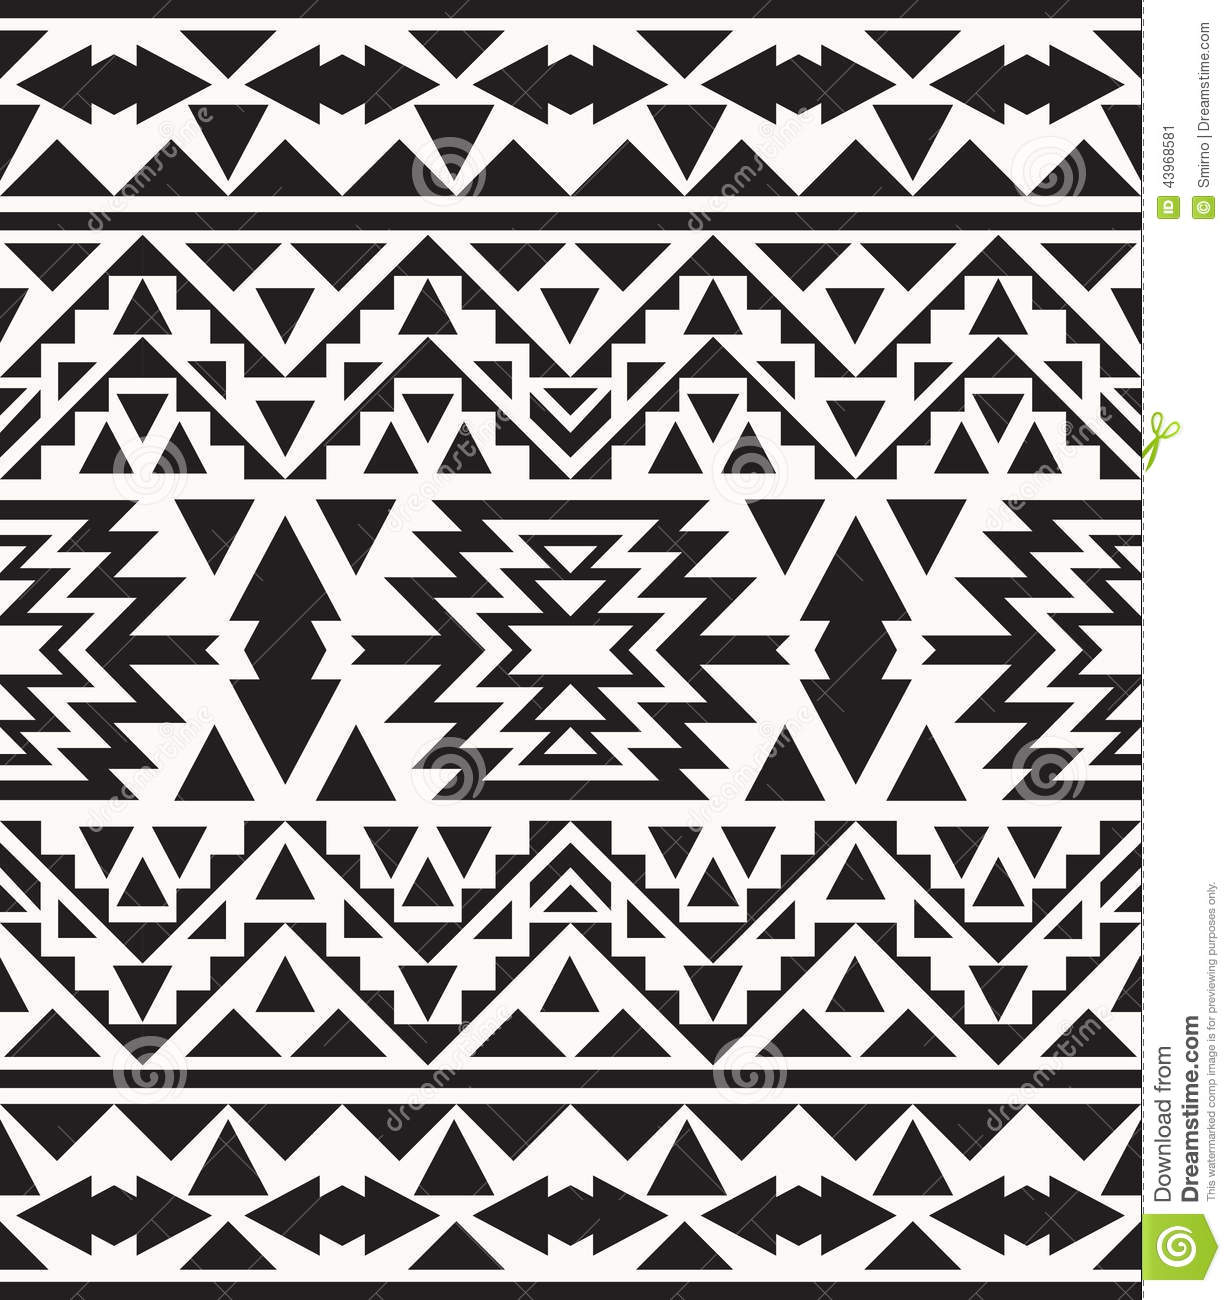 black and white native american patterns and designs